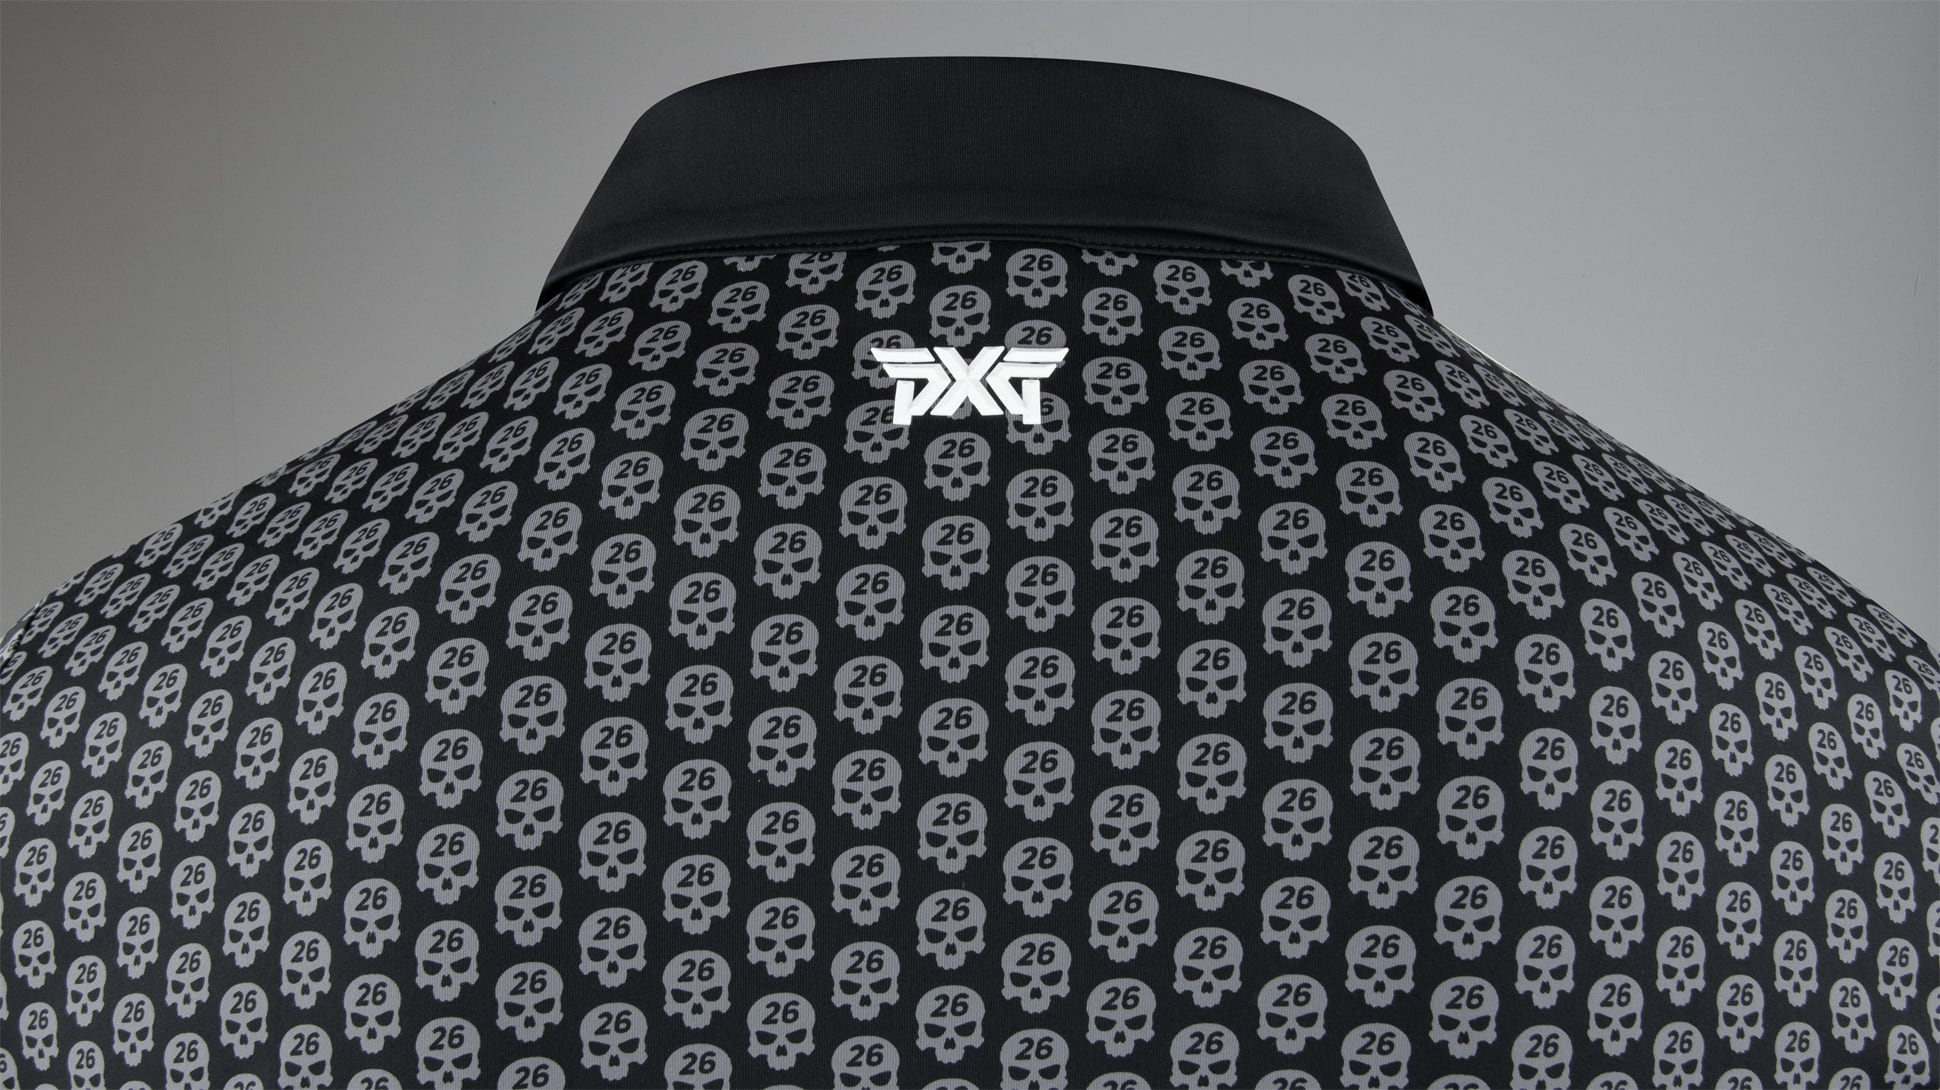 Athletic Fit Darkness Skull Polo Image 4